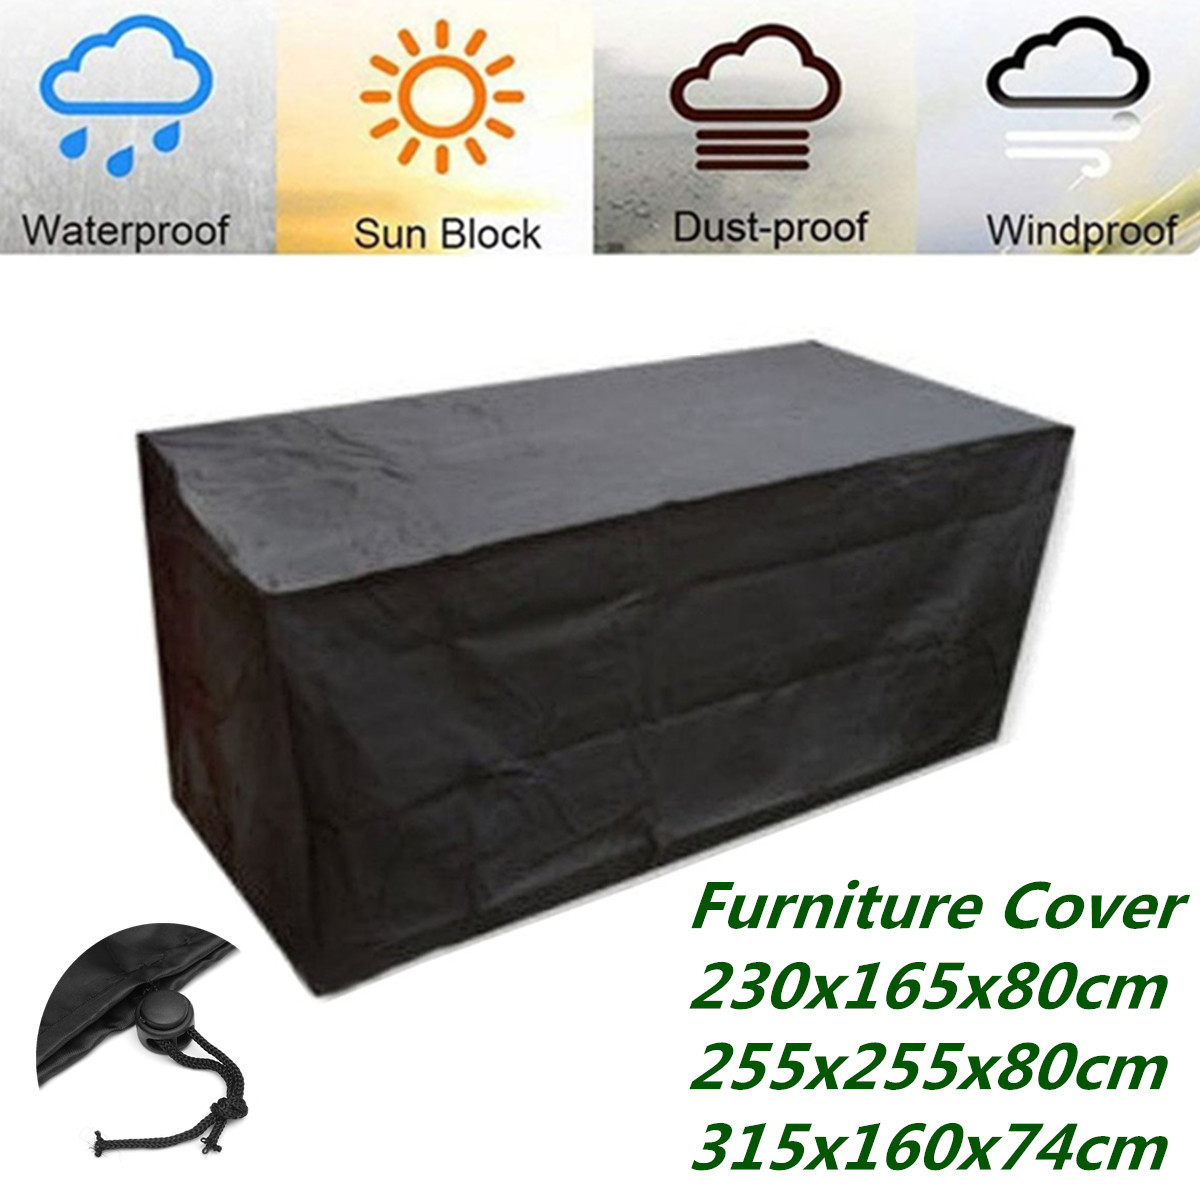 420D Heavy Duty Oxford Polyester Rectangular Patio Table Covers Waterproof Windproof & Ant Garden Furniture Covers Outdoor|Furniture Accessories| |  - title=